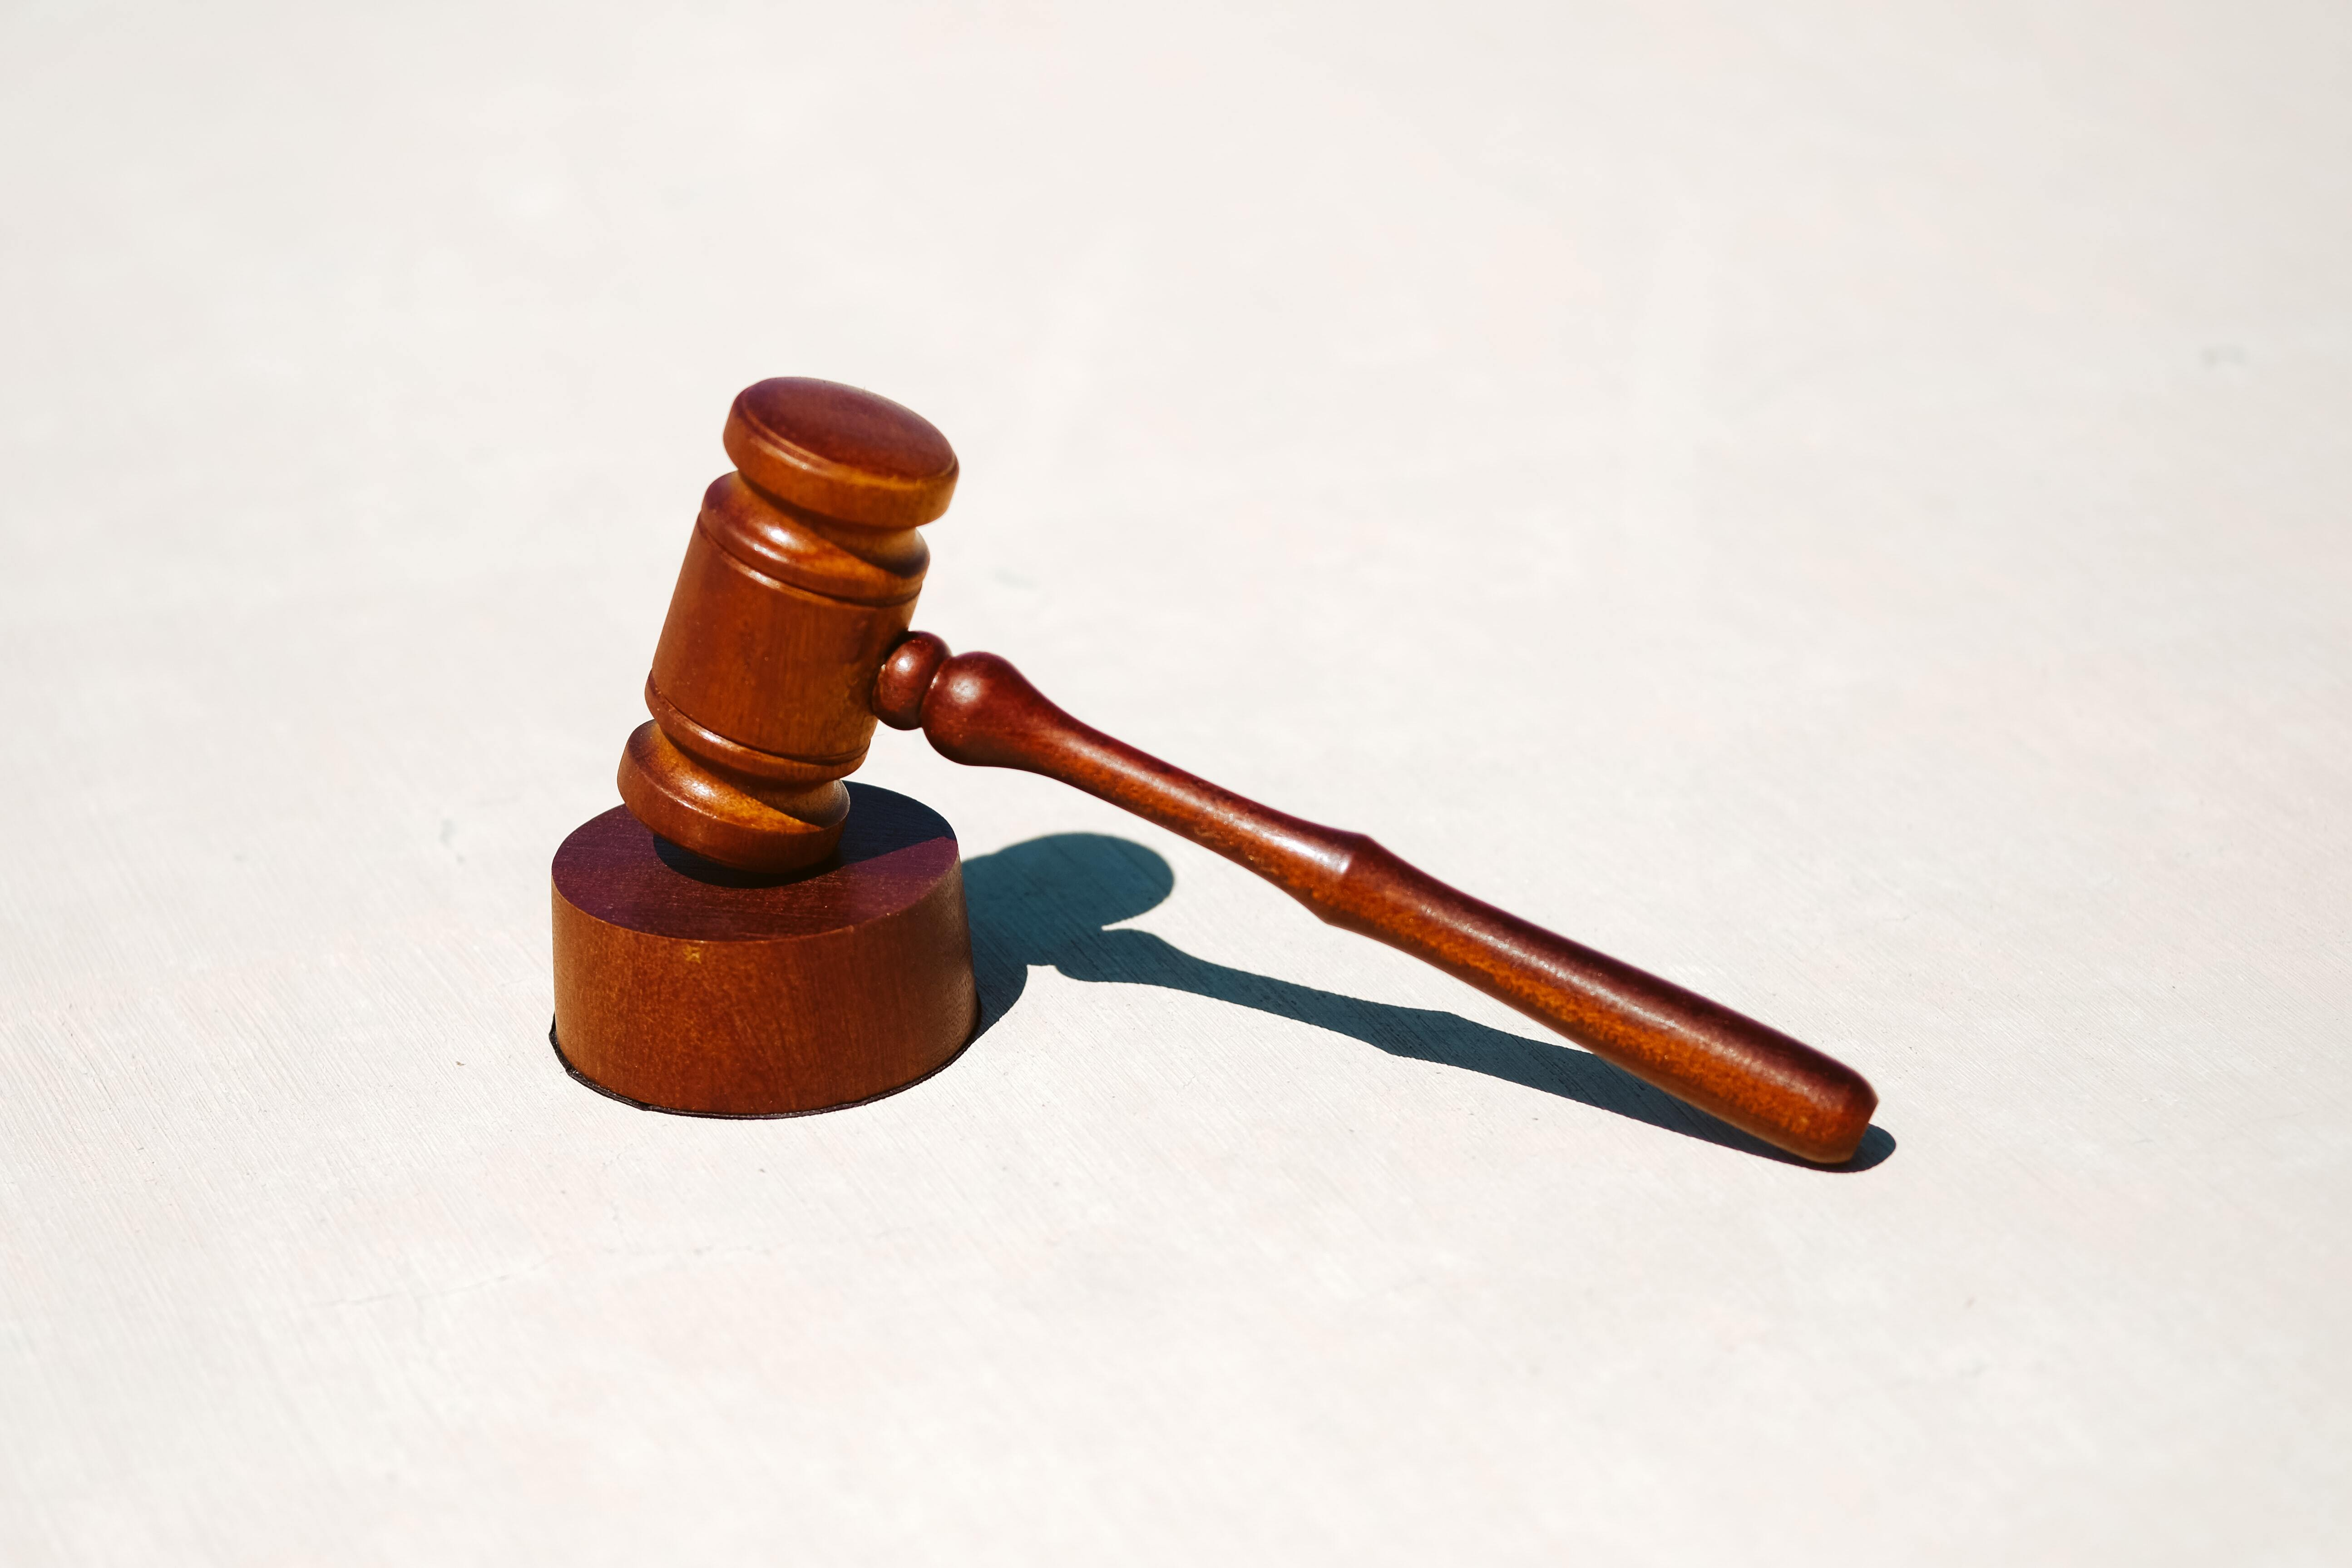 a hammer and gavel